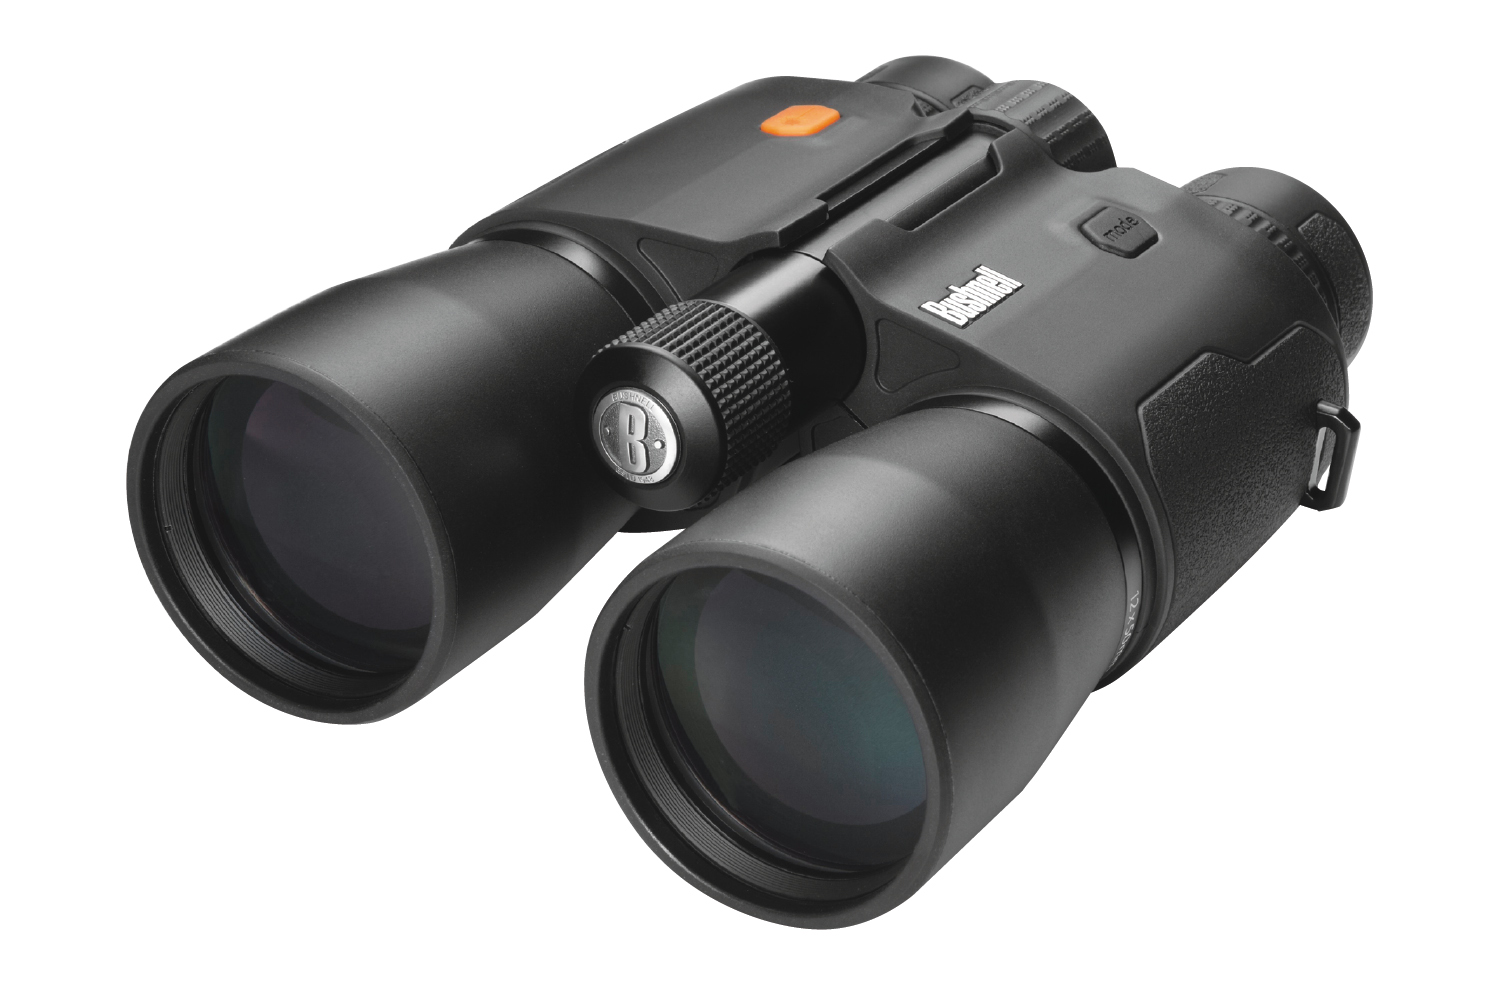 Бинокль-дальномер Bushnell FUSION 1 MILE ARC 12X50 бинокль sturman 12x50